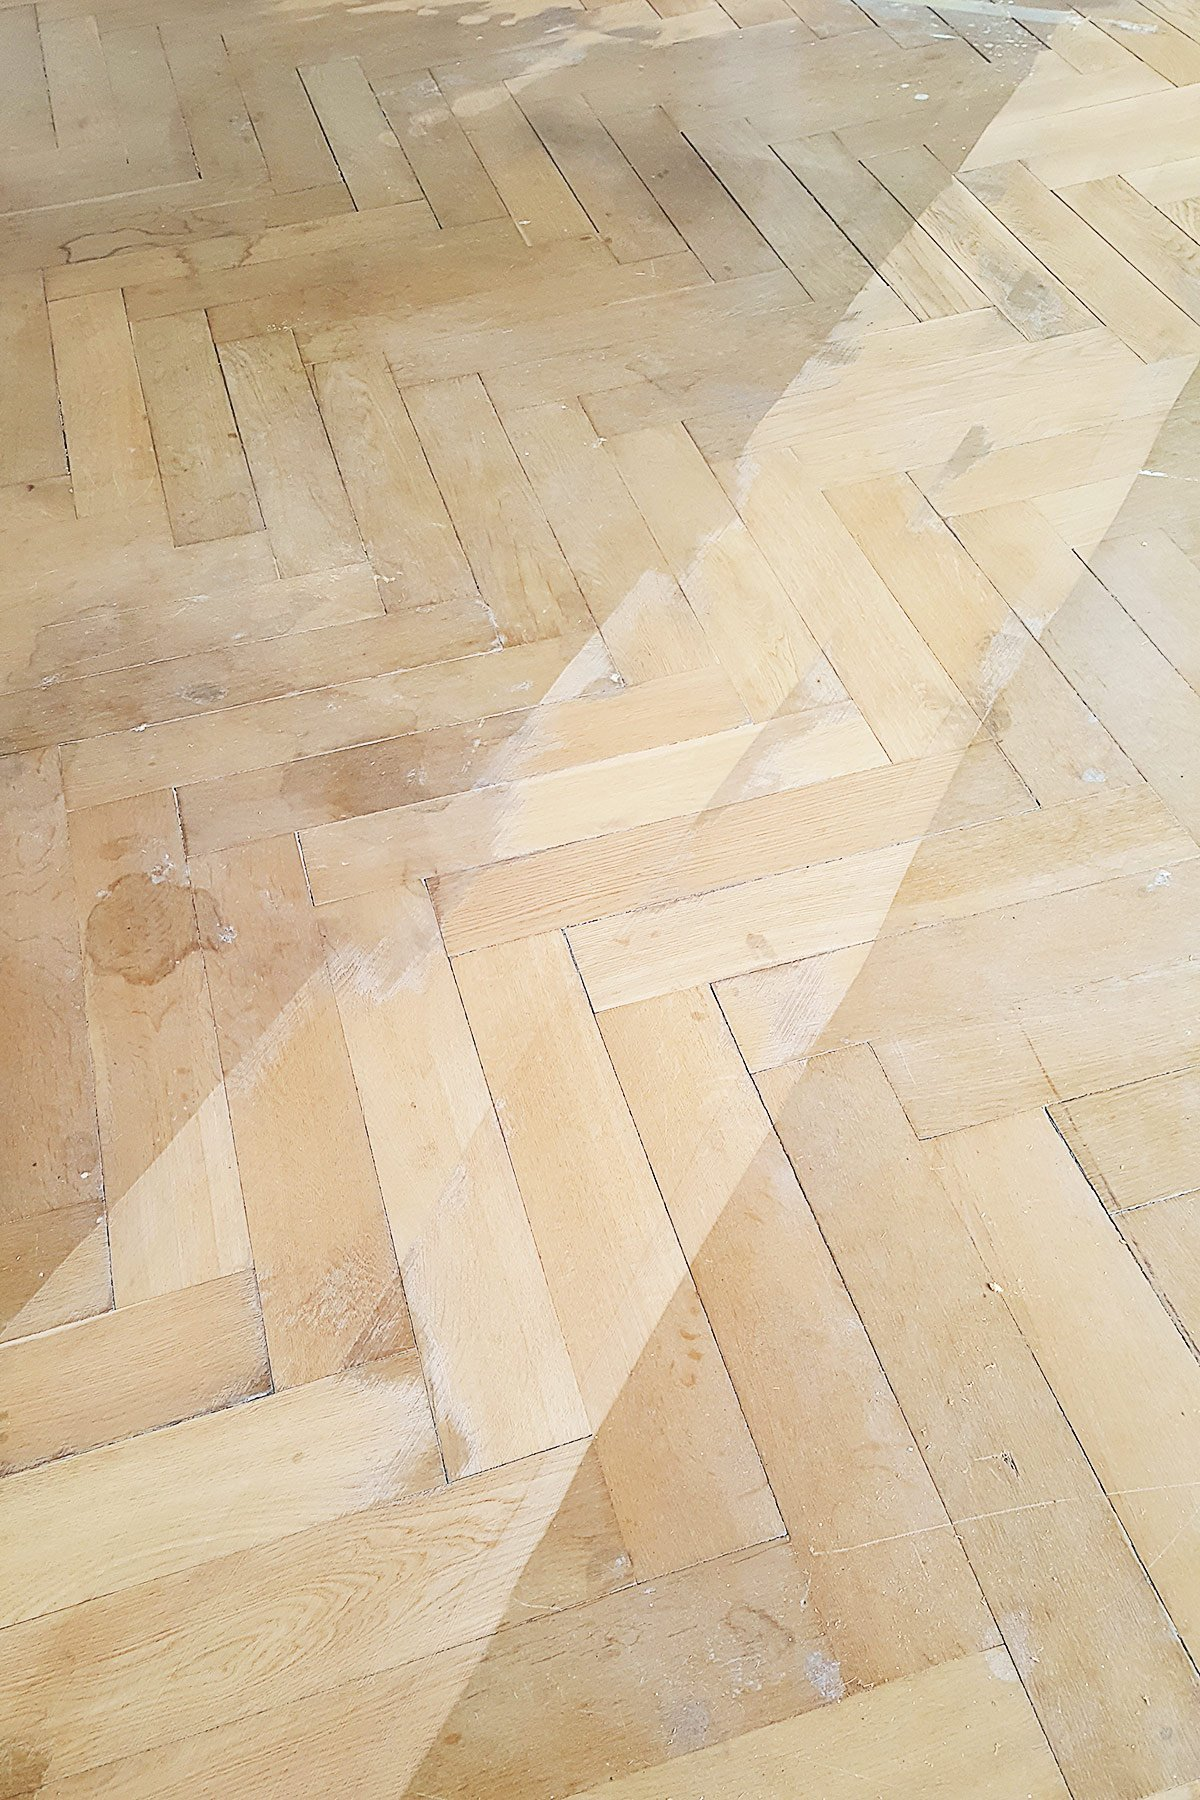 Sanding A Herringbone Parquet Floor | Little House On The Corner